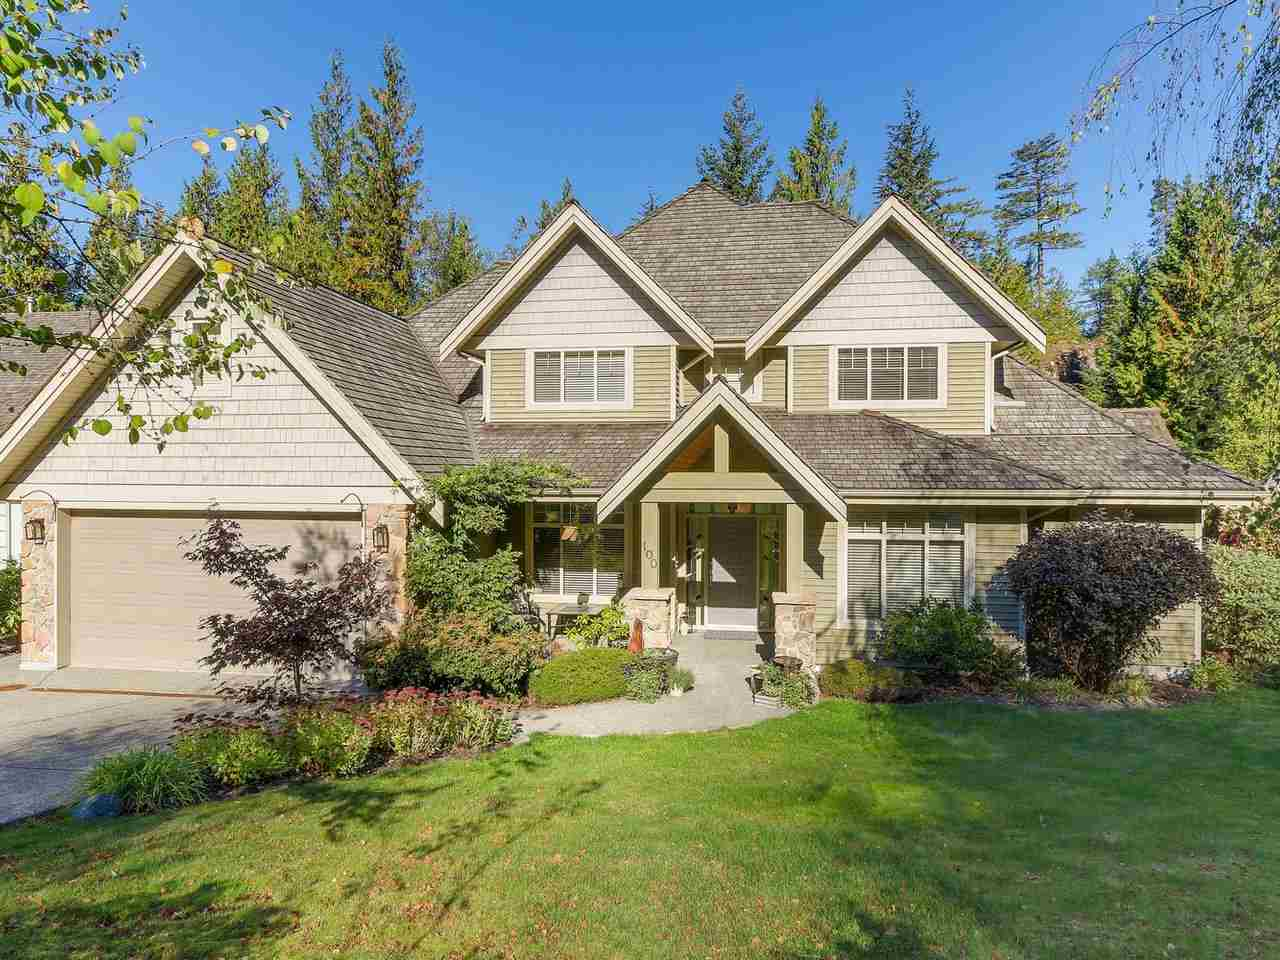 Main Photo: 100 STONEGATE Drive: Furry Creek House for sale (West Vancouver)  : MLS®# R2224222